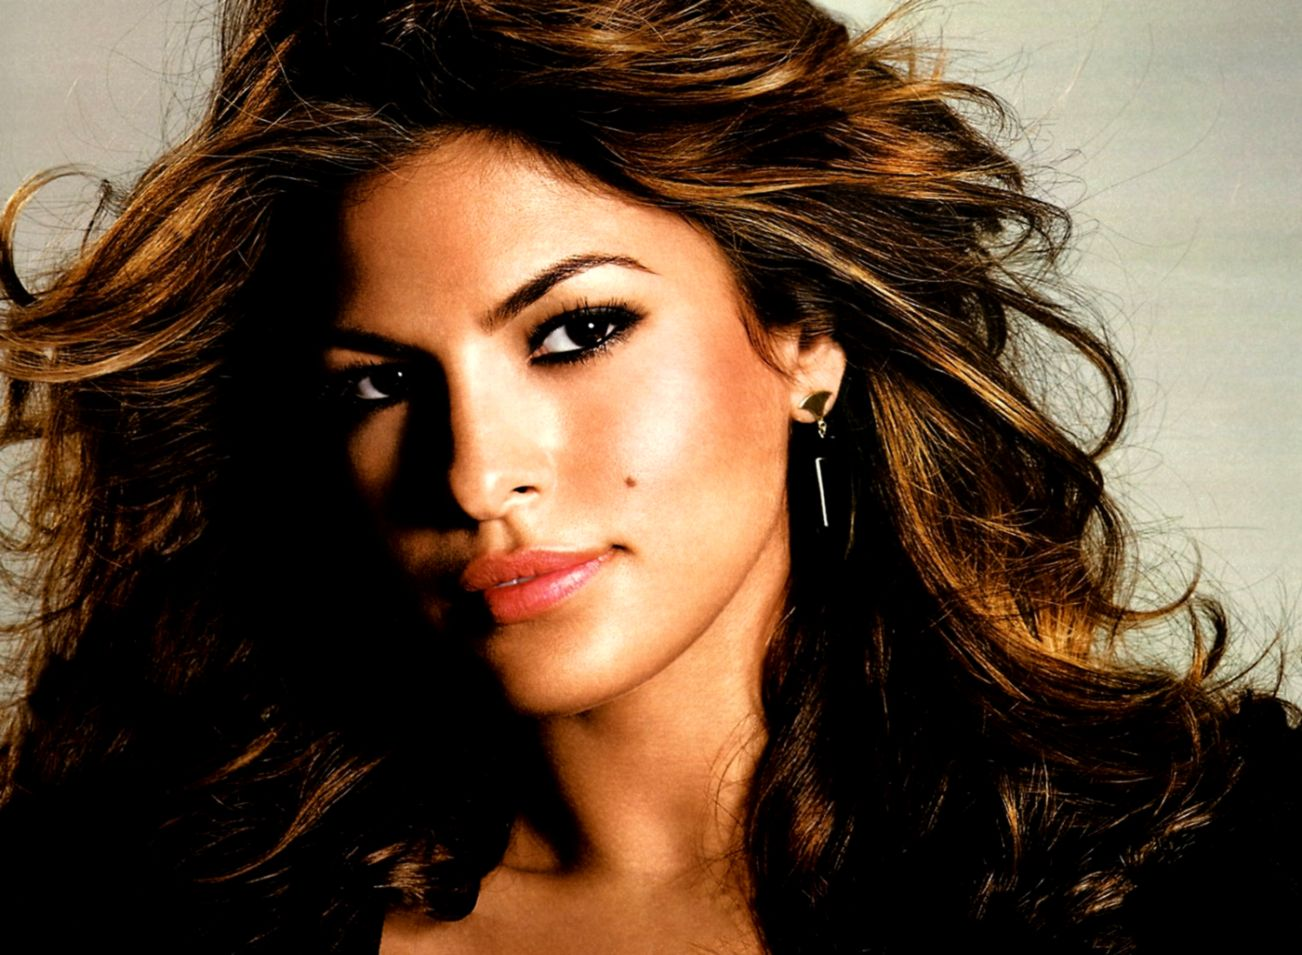 Black and White Eva Mendes Wallpaper | Full HD Pictures